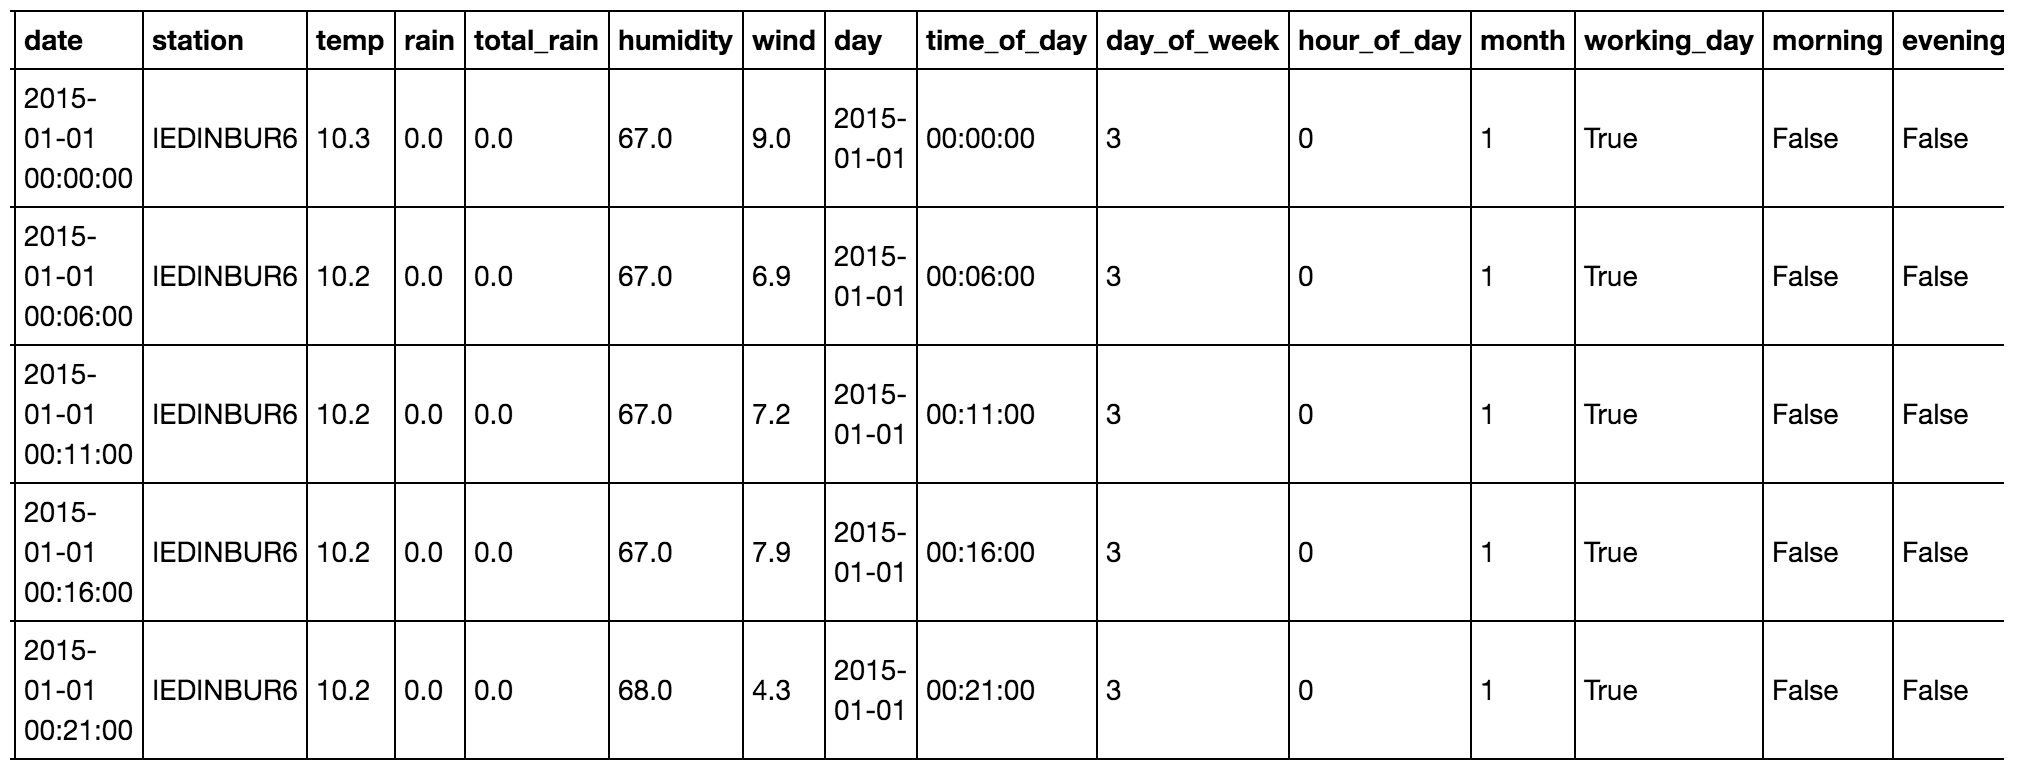 Data after cleansing from Wunderground.com. This data is now in good format for grouping and visualisation using Pandas.